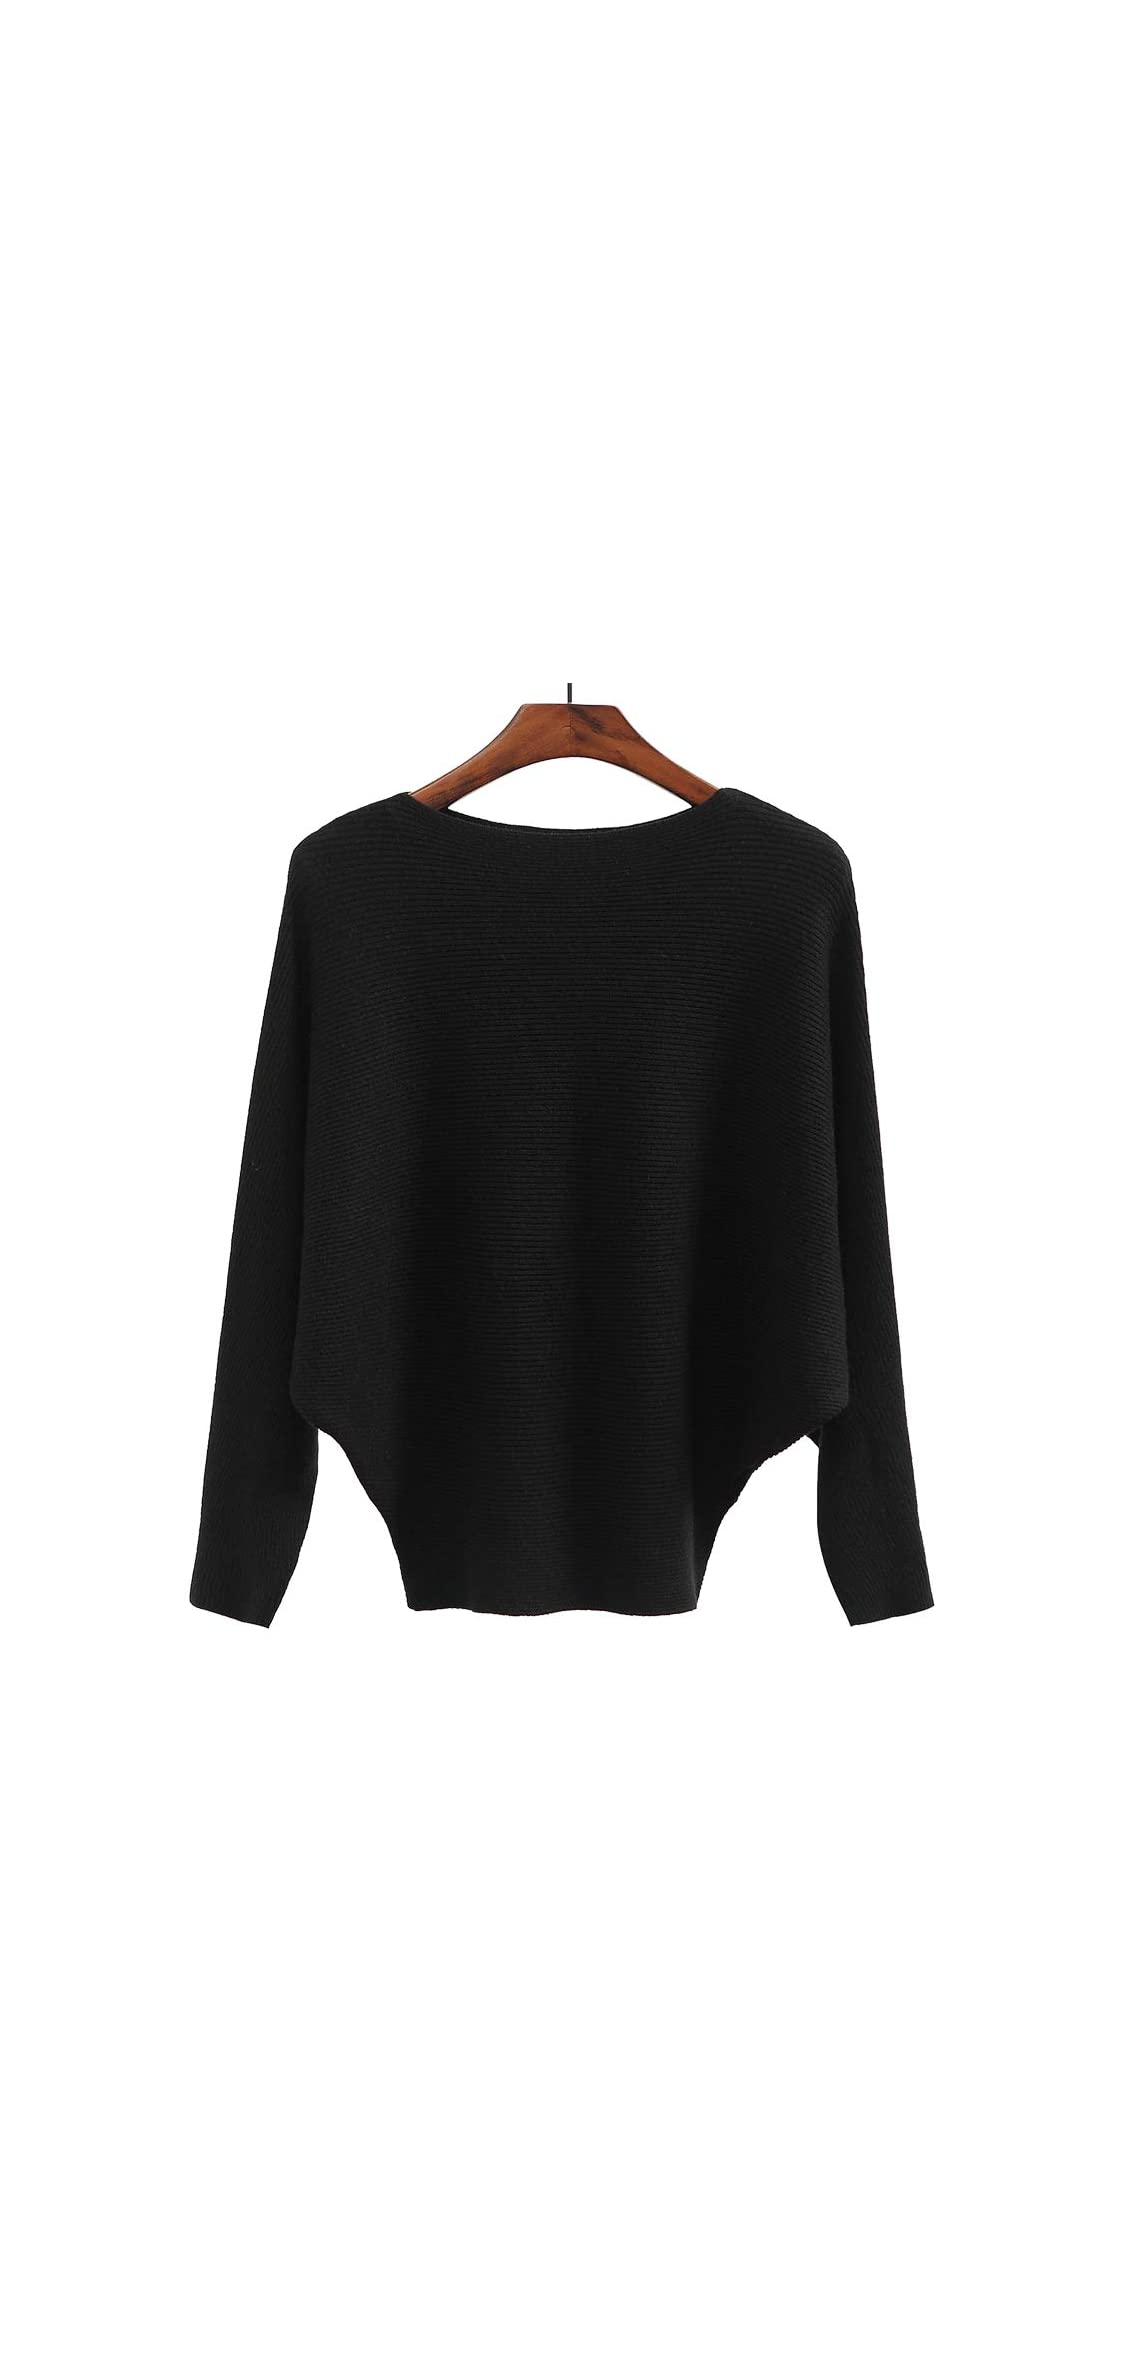 Women Sweaters Batwing Sleeve Casual Cashmere Jumpers